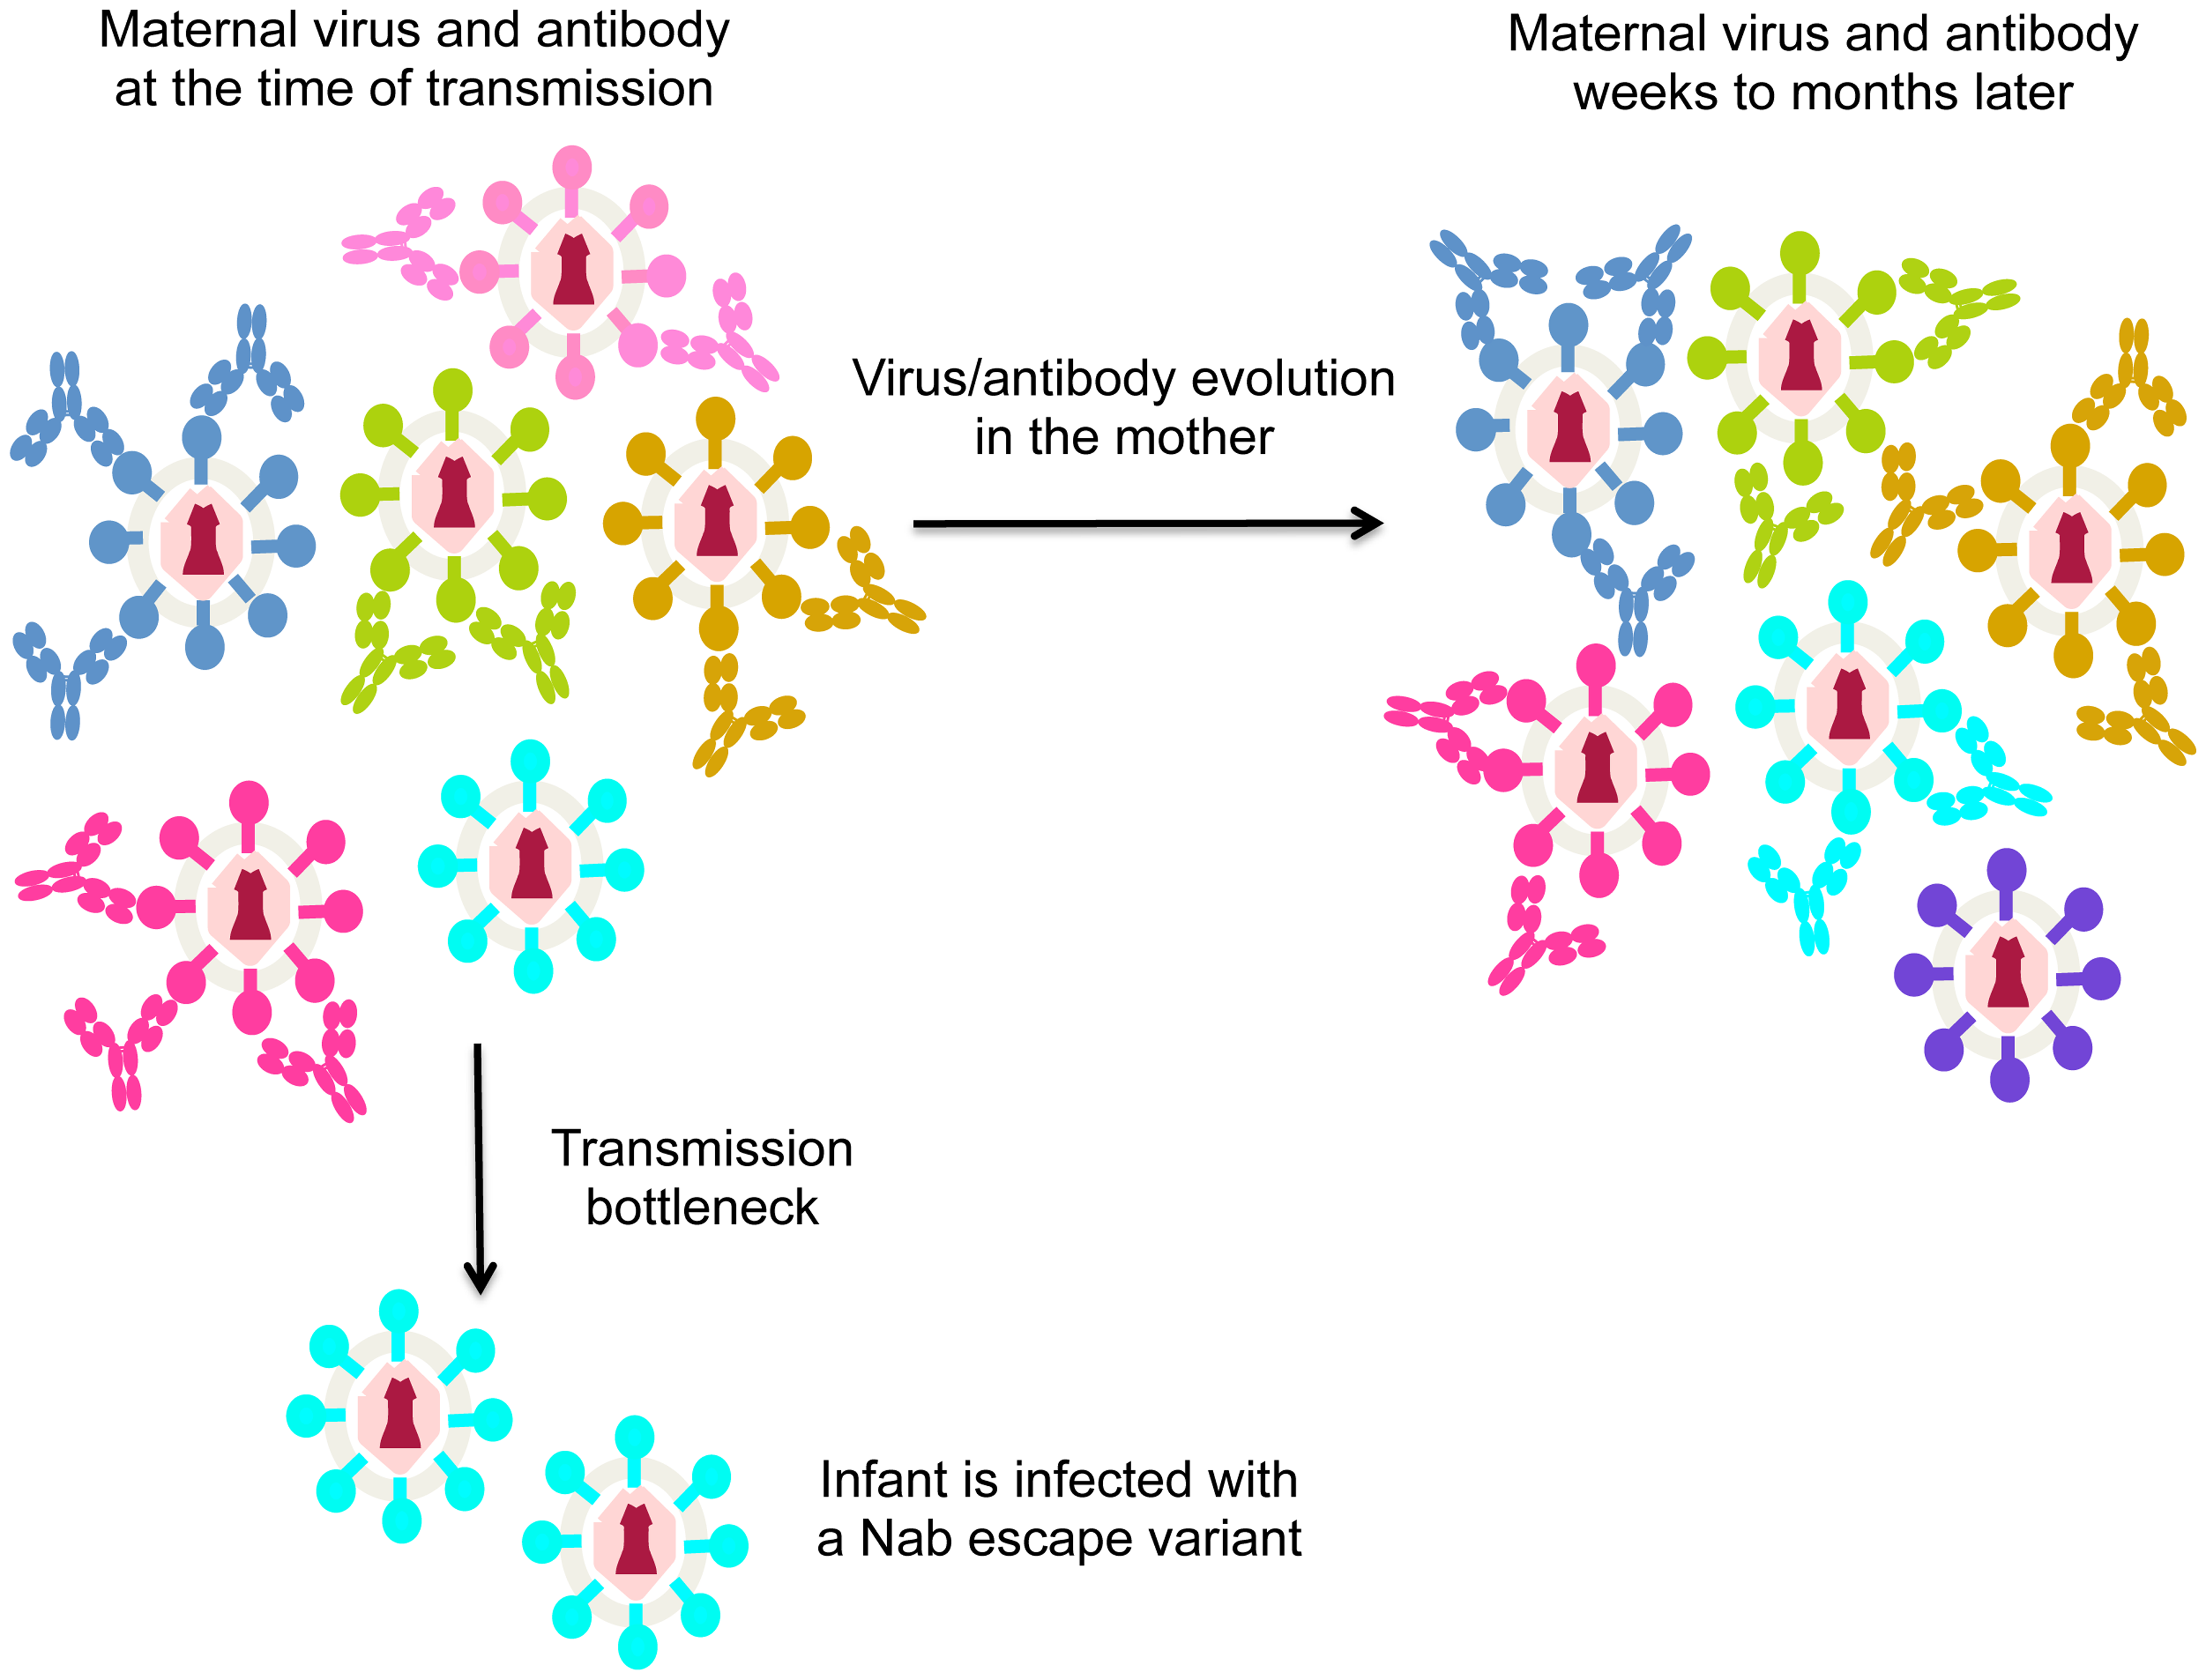 Schematic of virus escape from antibody in MTCT.